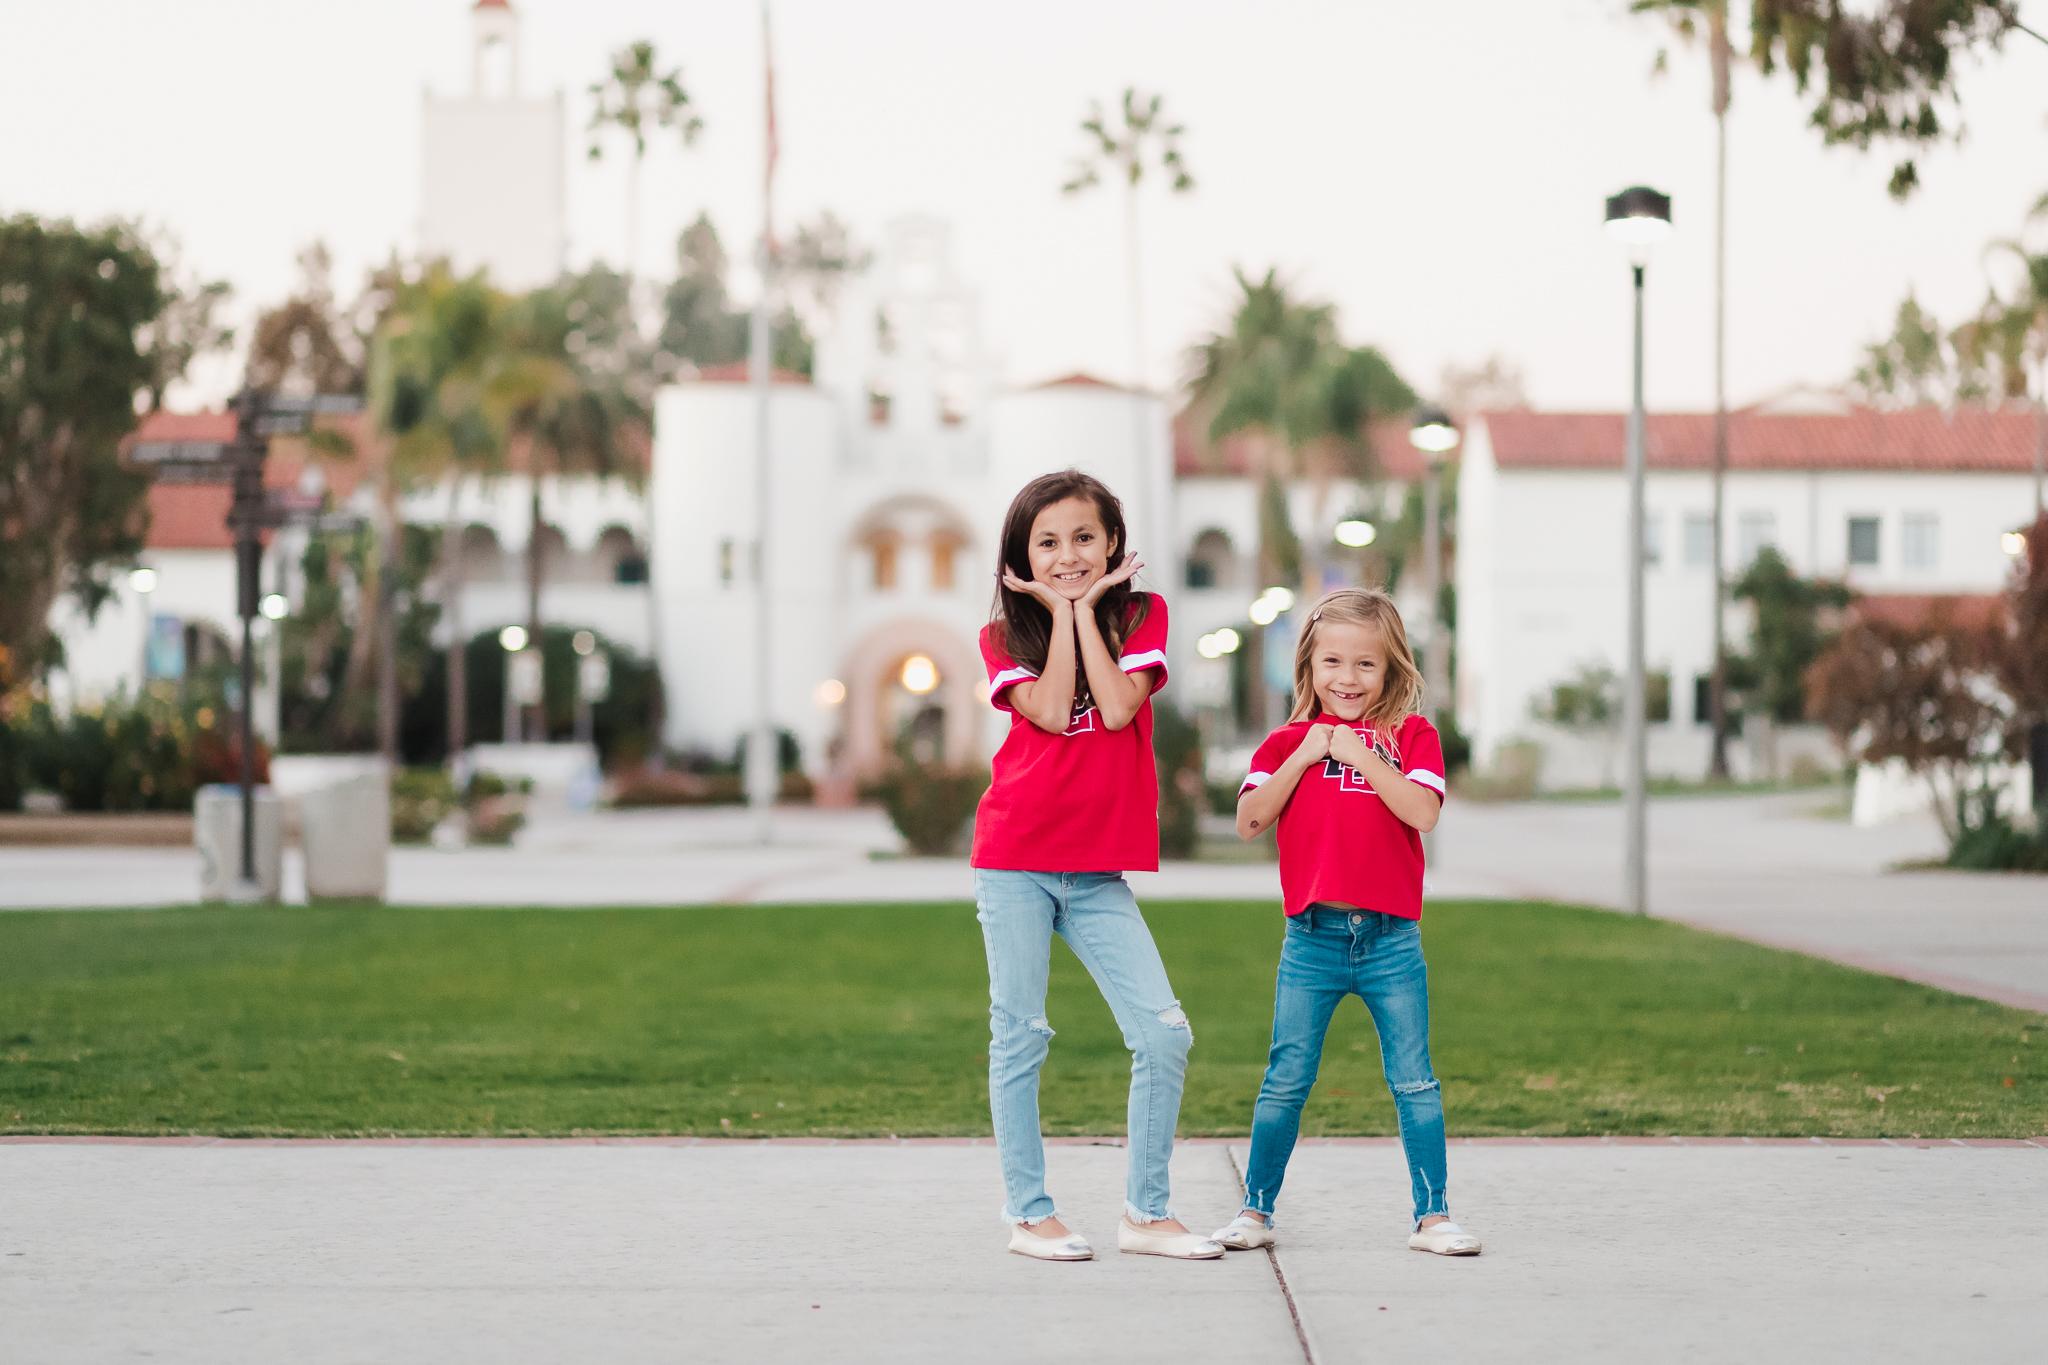 Future Aztecs